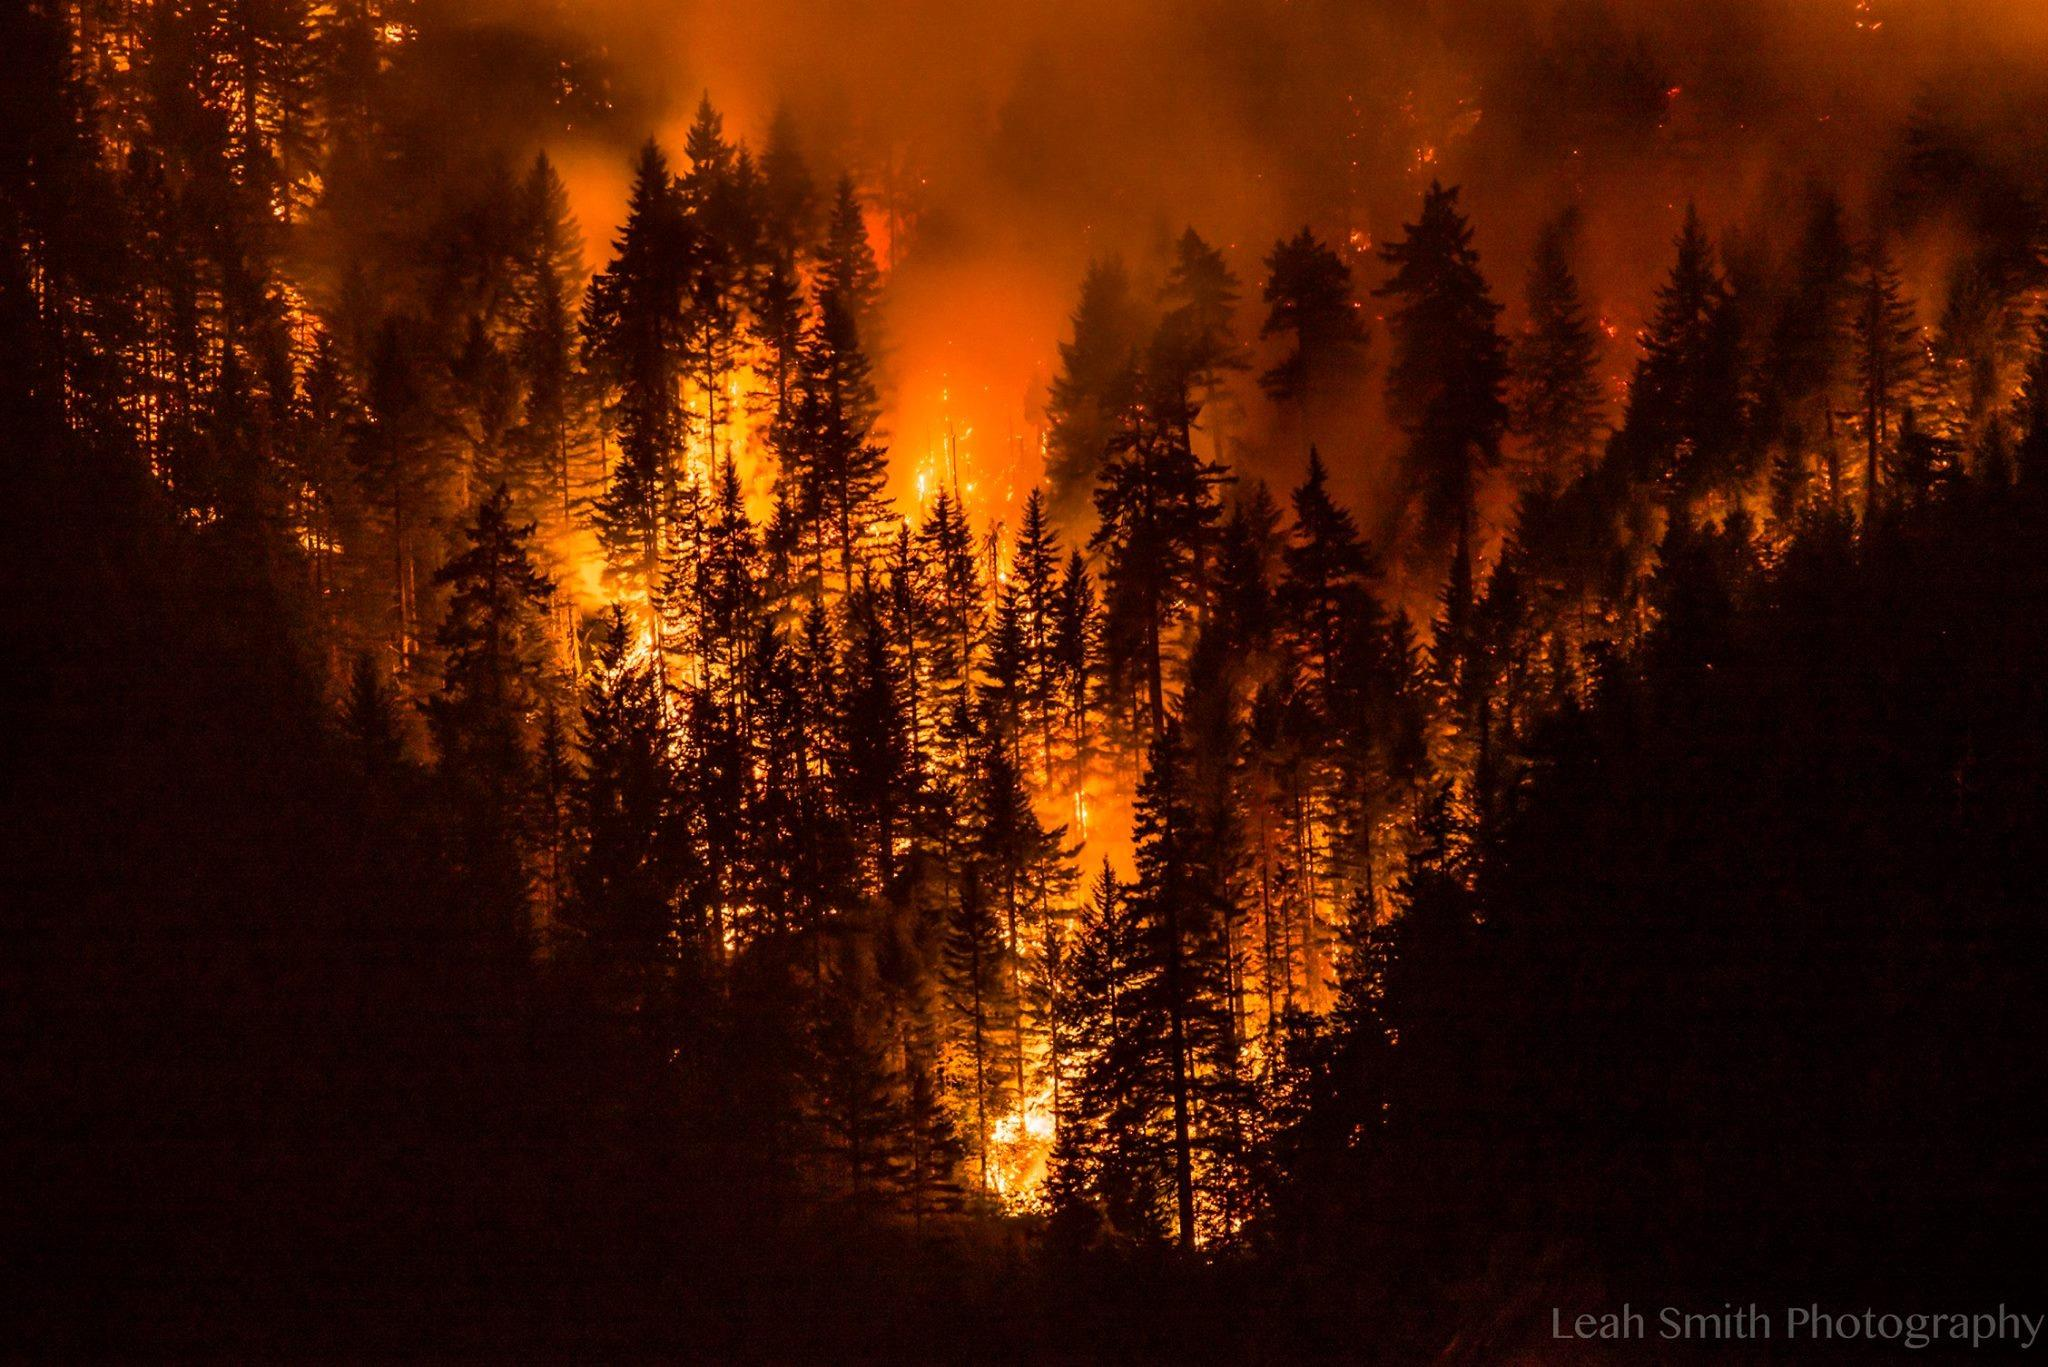 Photo of the Eagle Creek Fire taken on Wednesday, September 13, 2017. Photo by Leah Smith